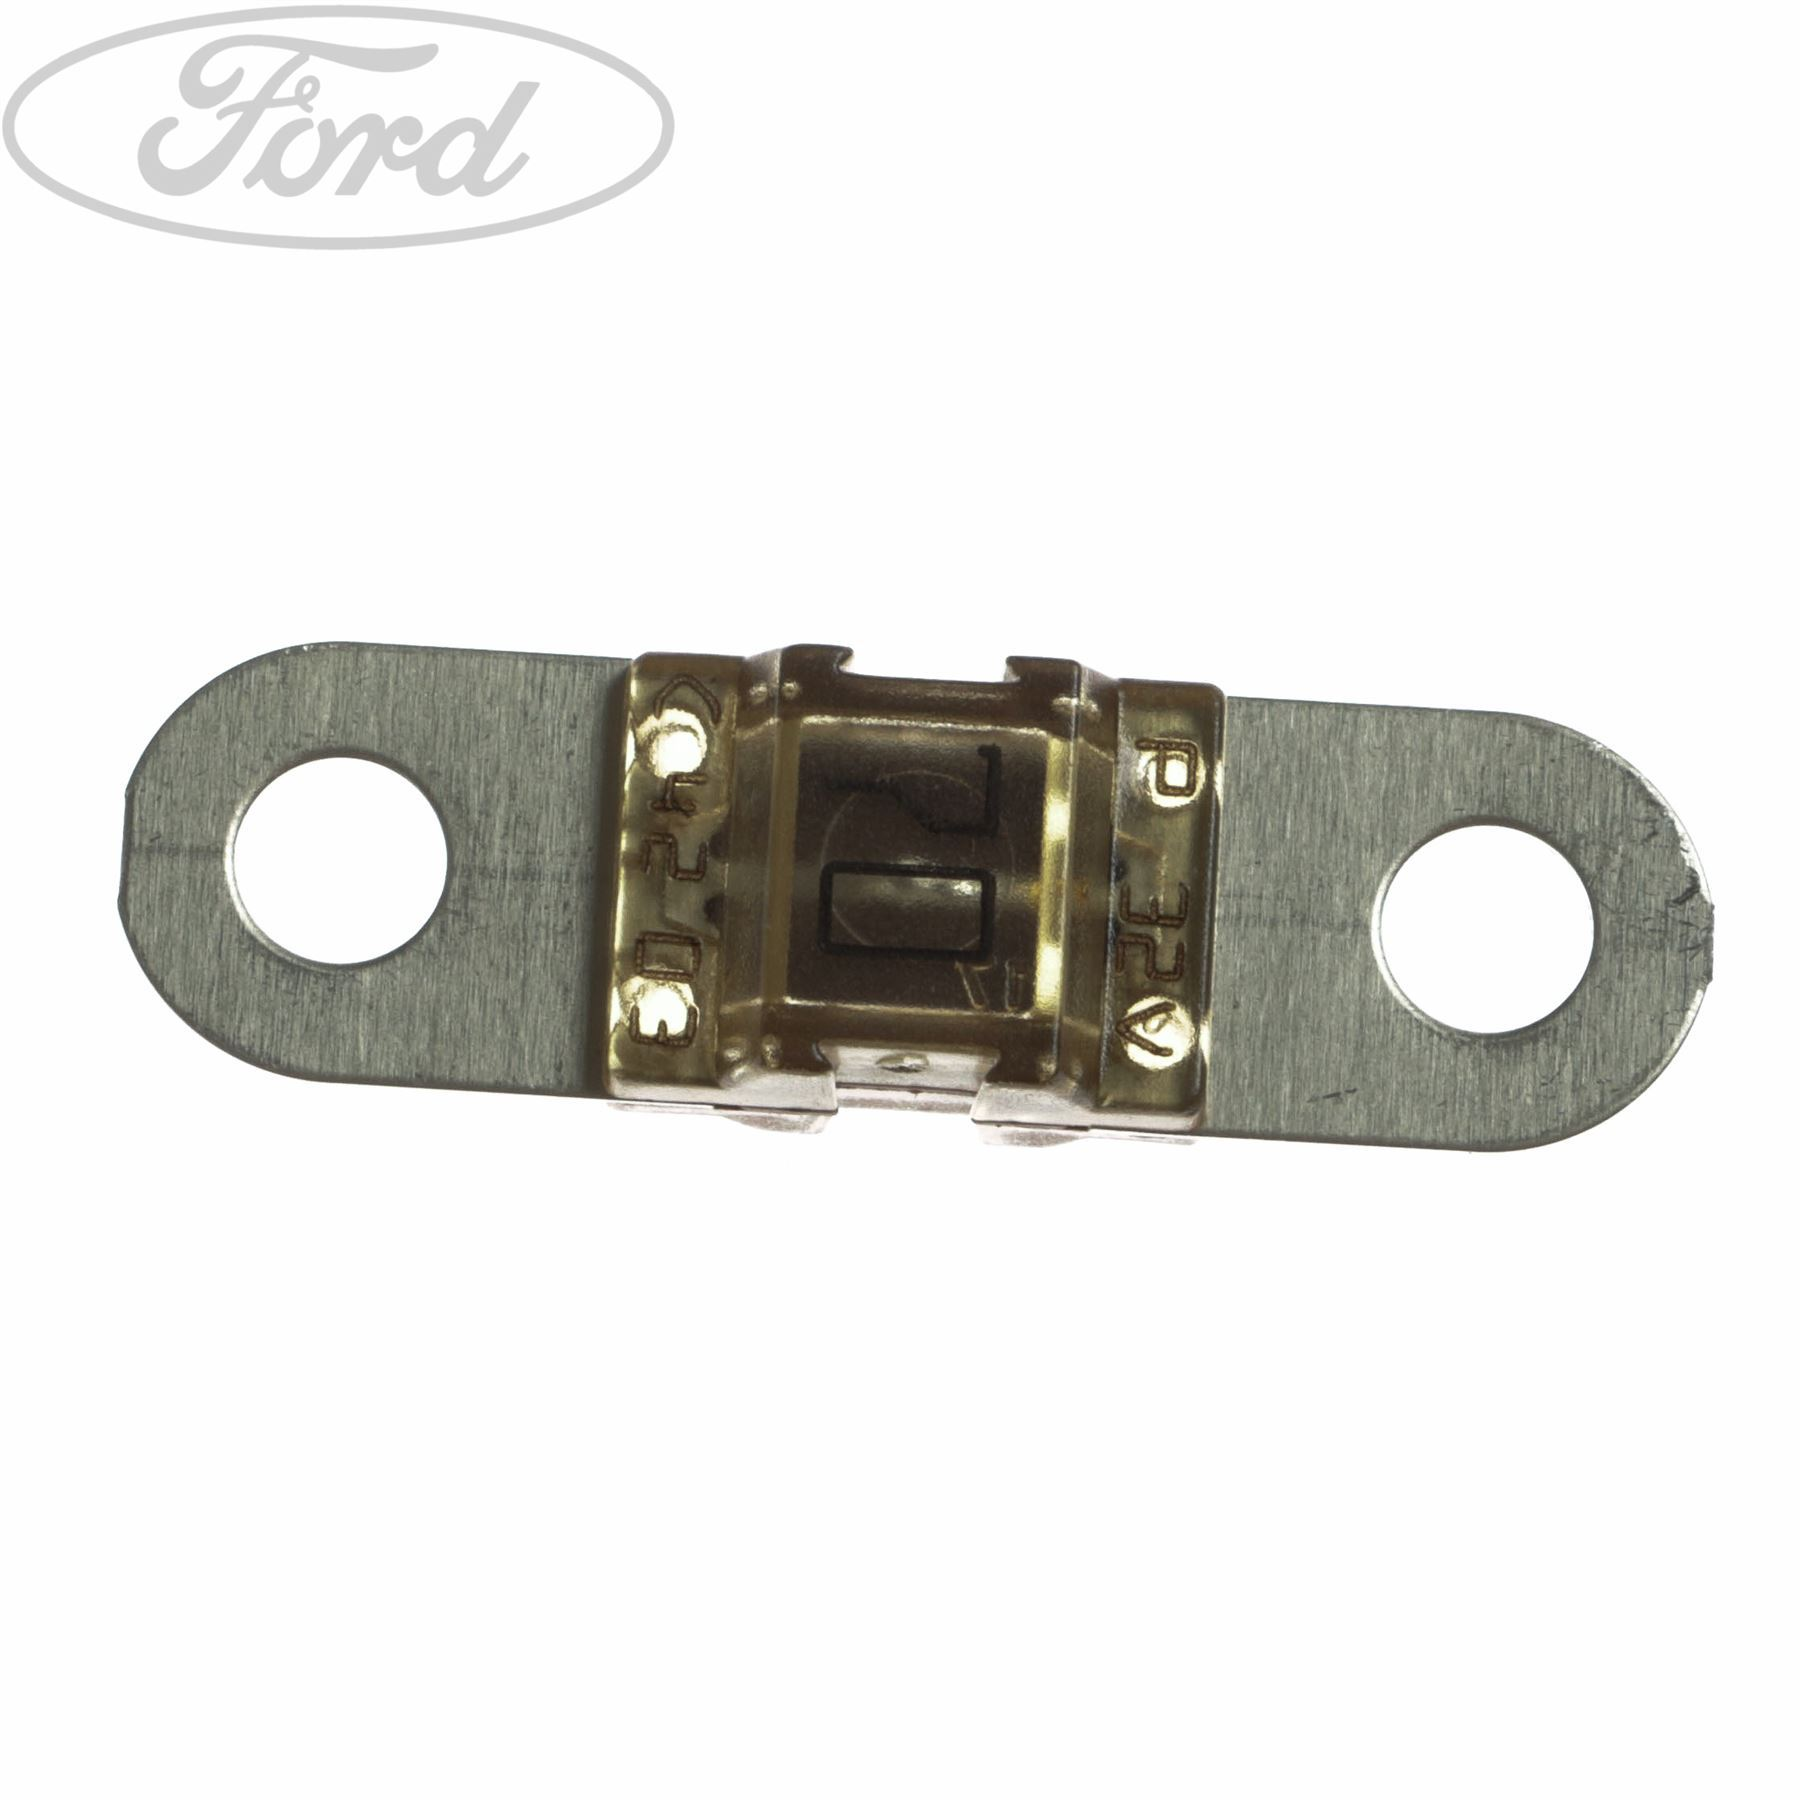 hight resolution of details about genuine ford focus mk3 fiesta mk6 fusion kuga mk1 circuit breaker 1148215